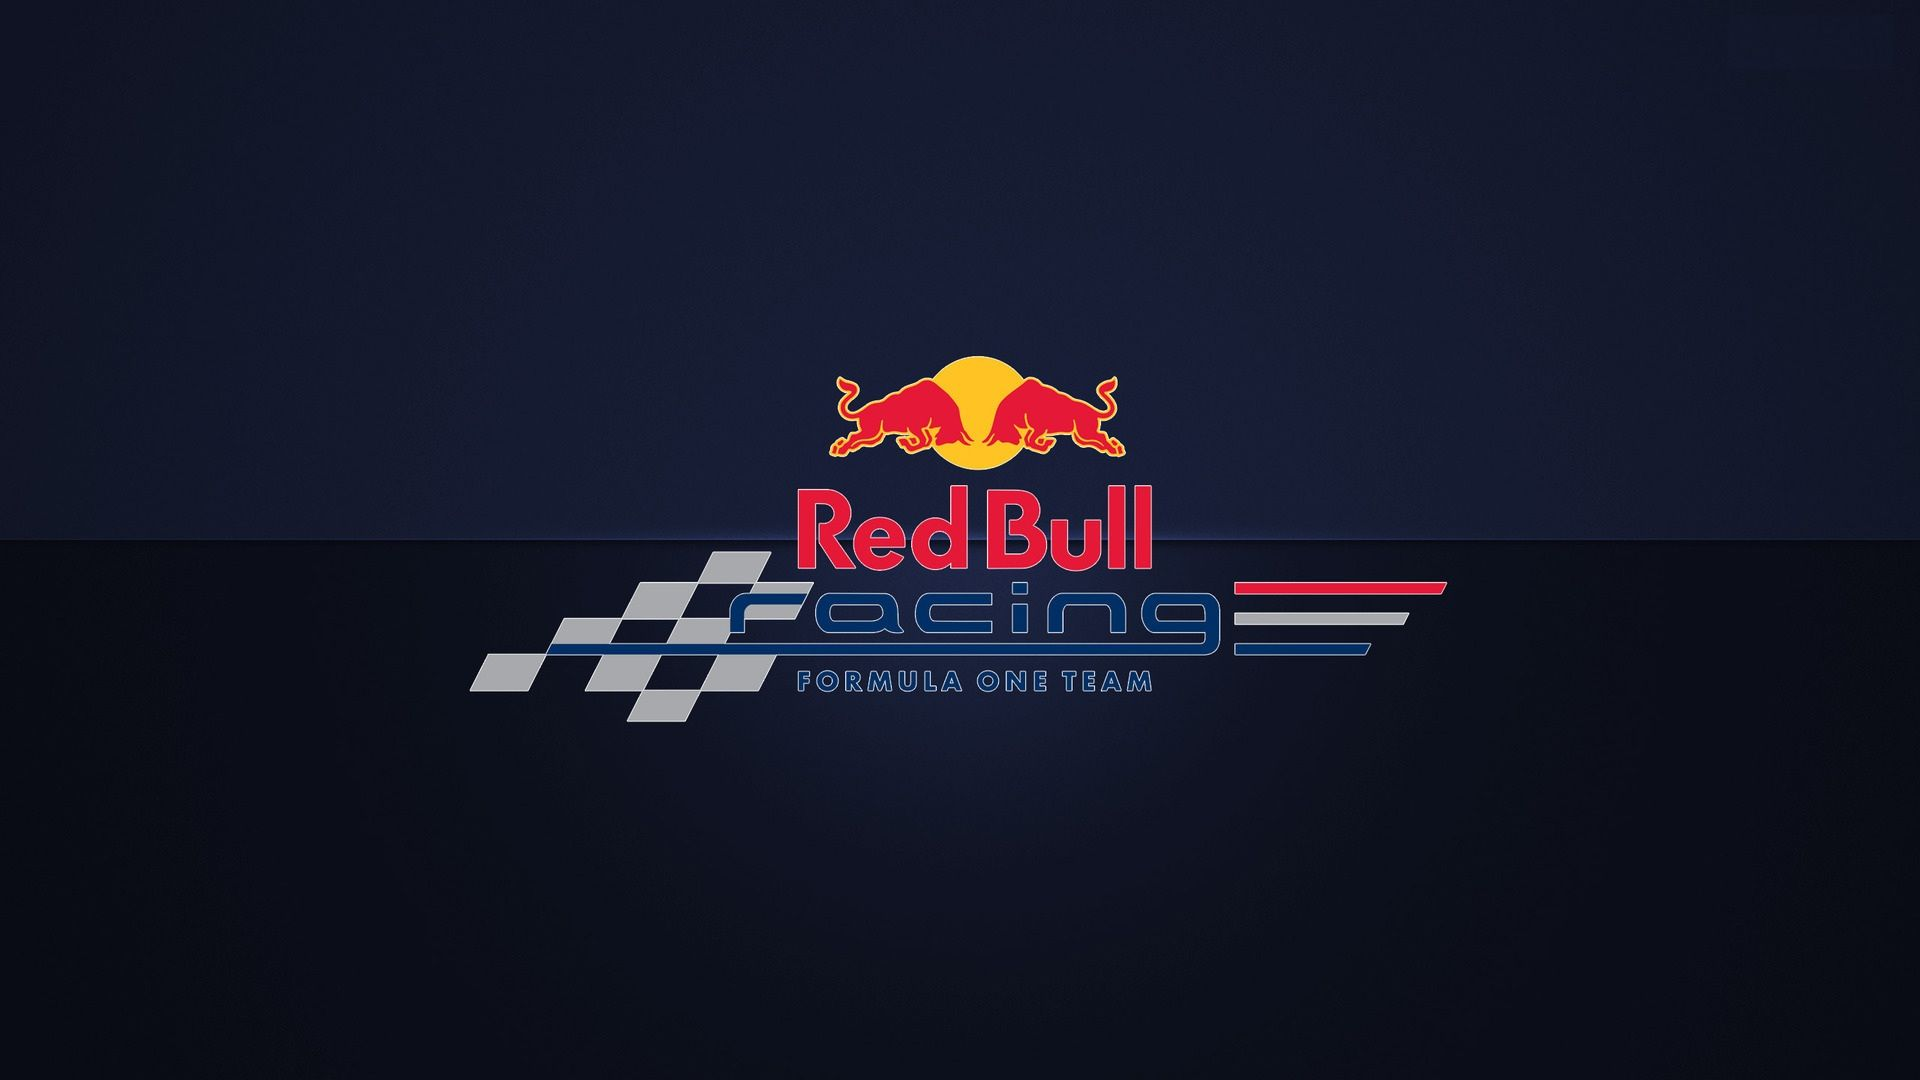 Red Bull Racing Formula One Logo Wallpapers HD Wallpapers 1920x1080